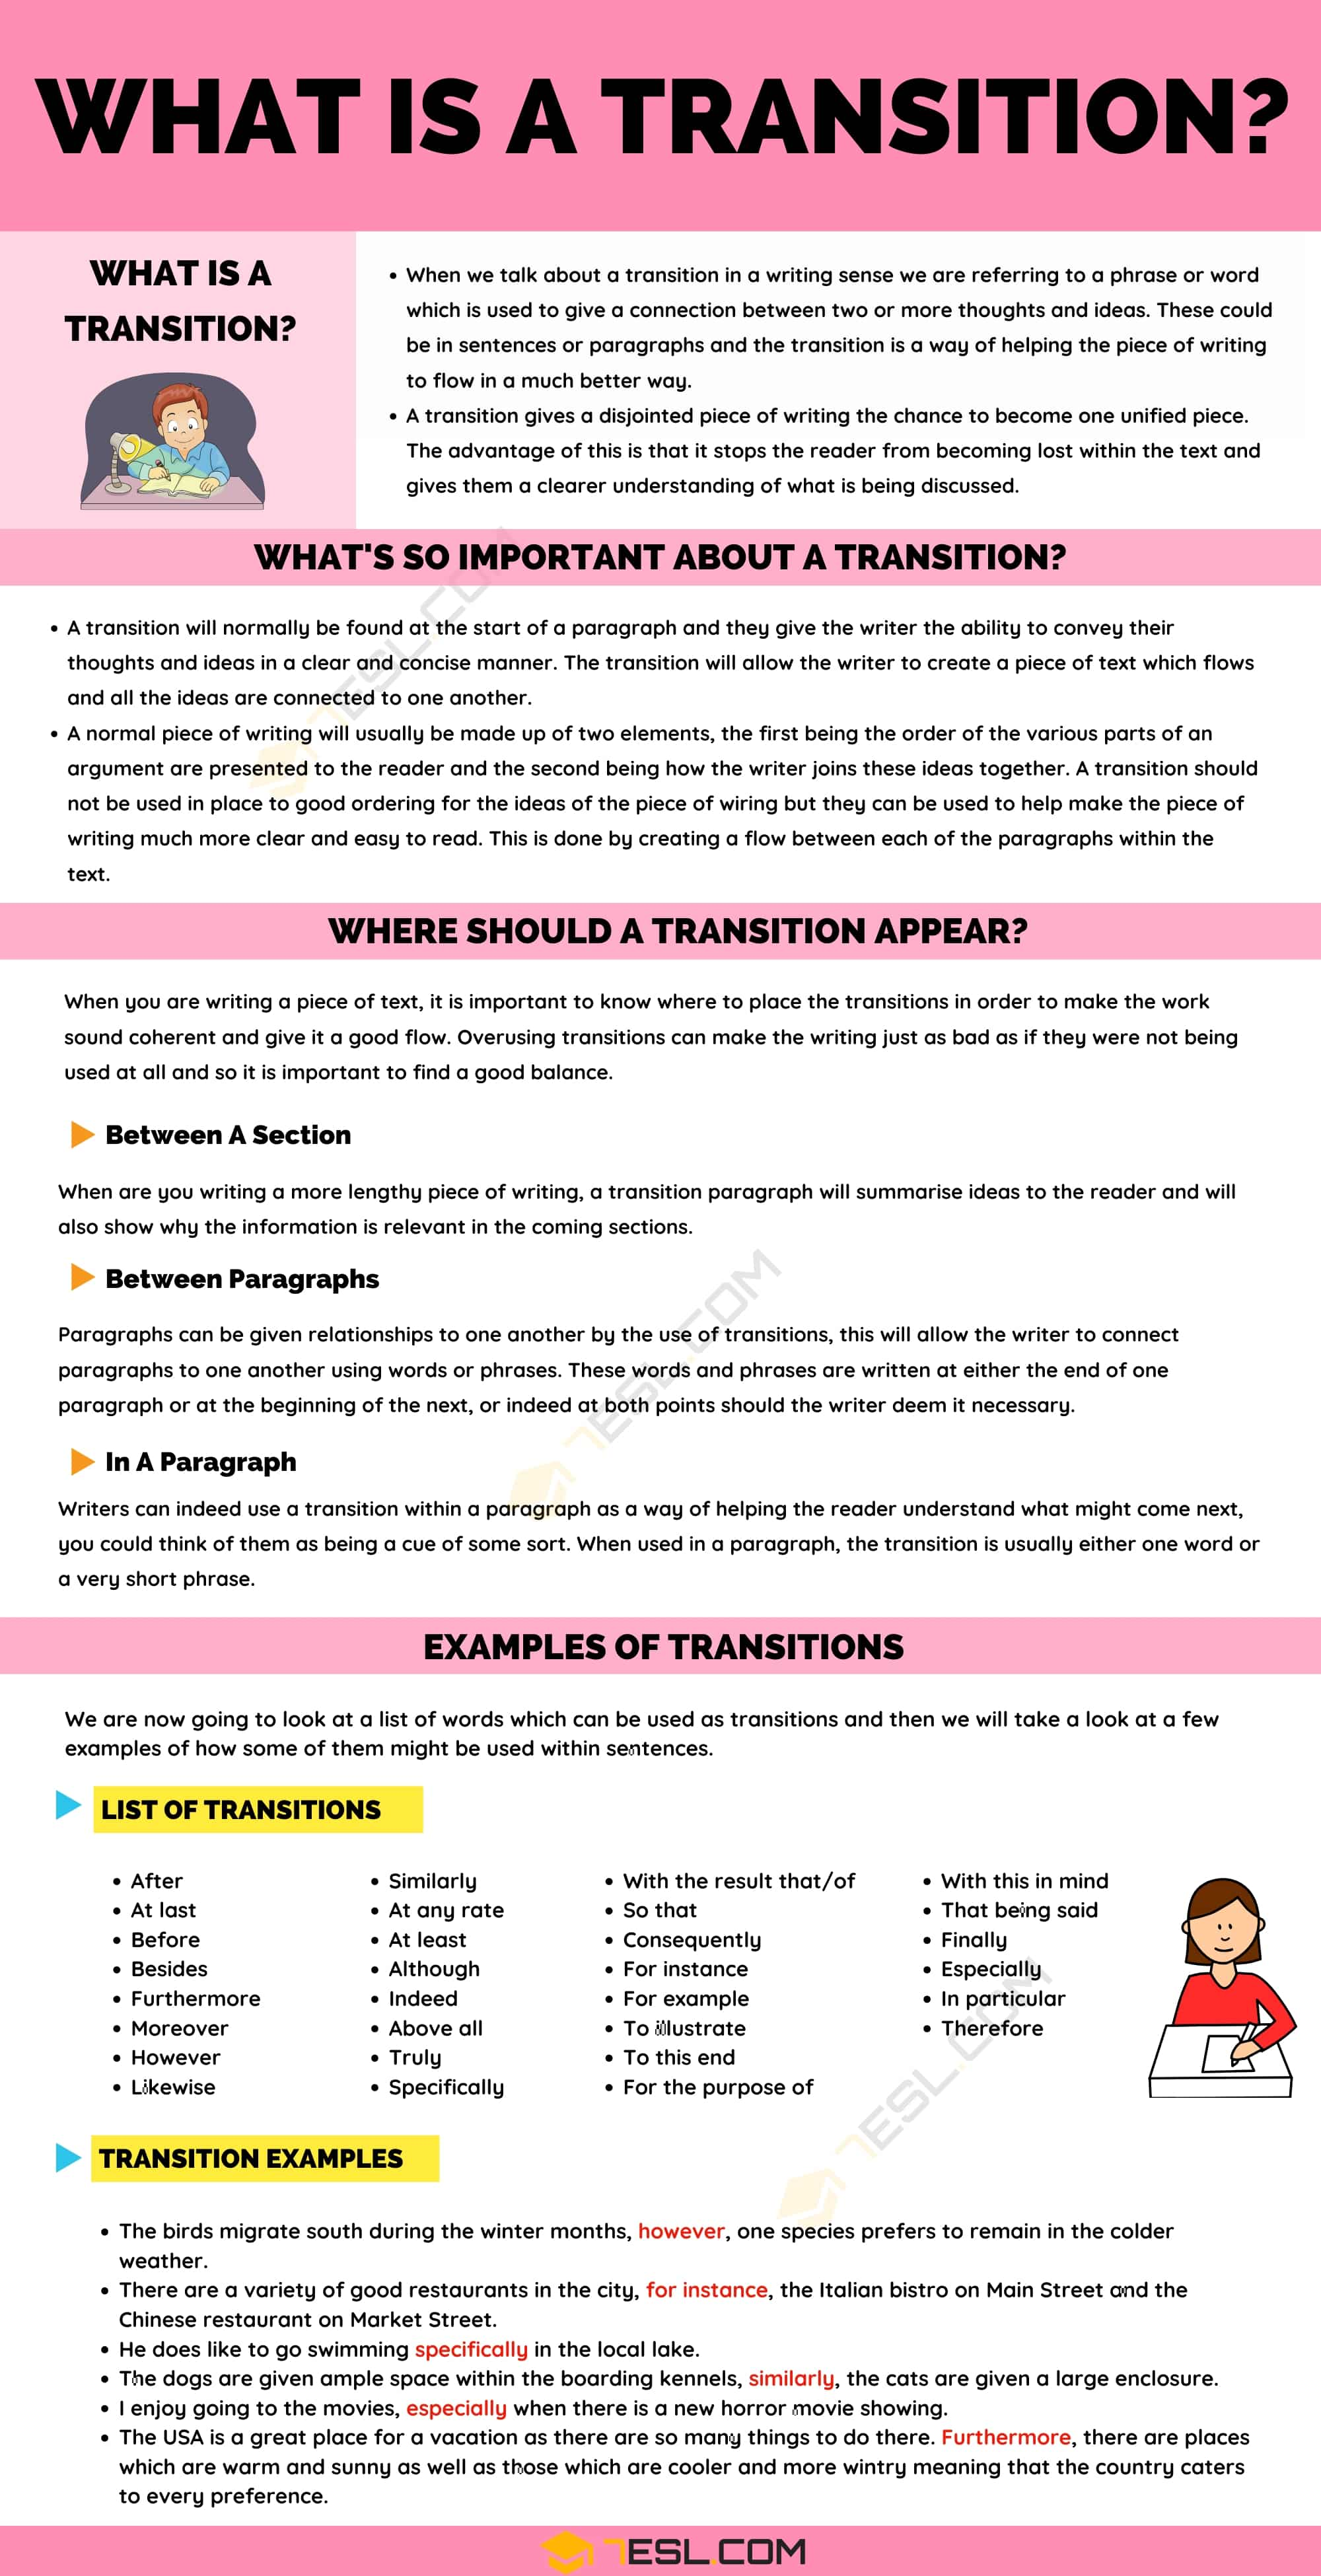 Transition: Definition and Useful Examples of Transitions in Writing